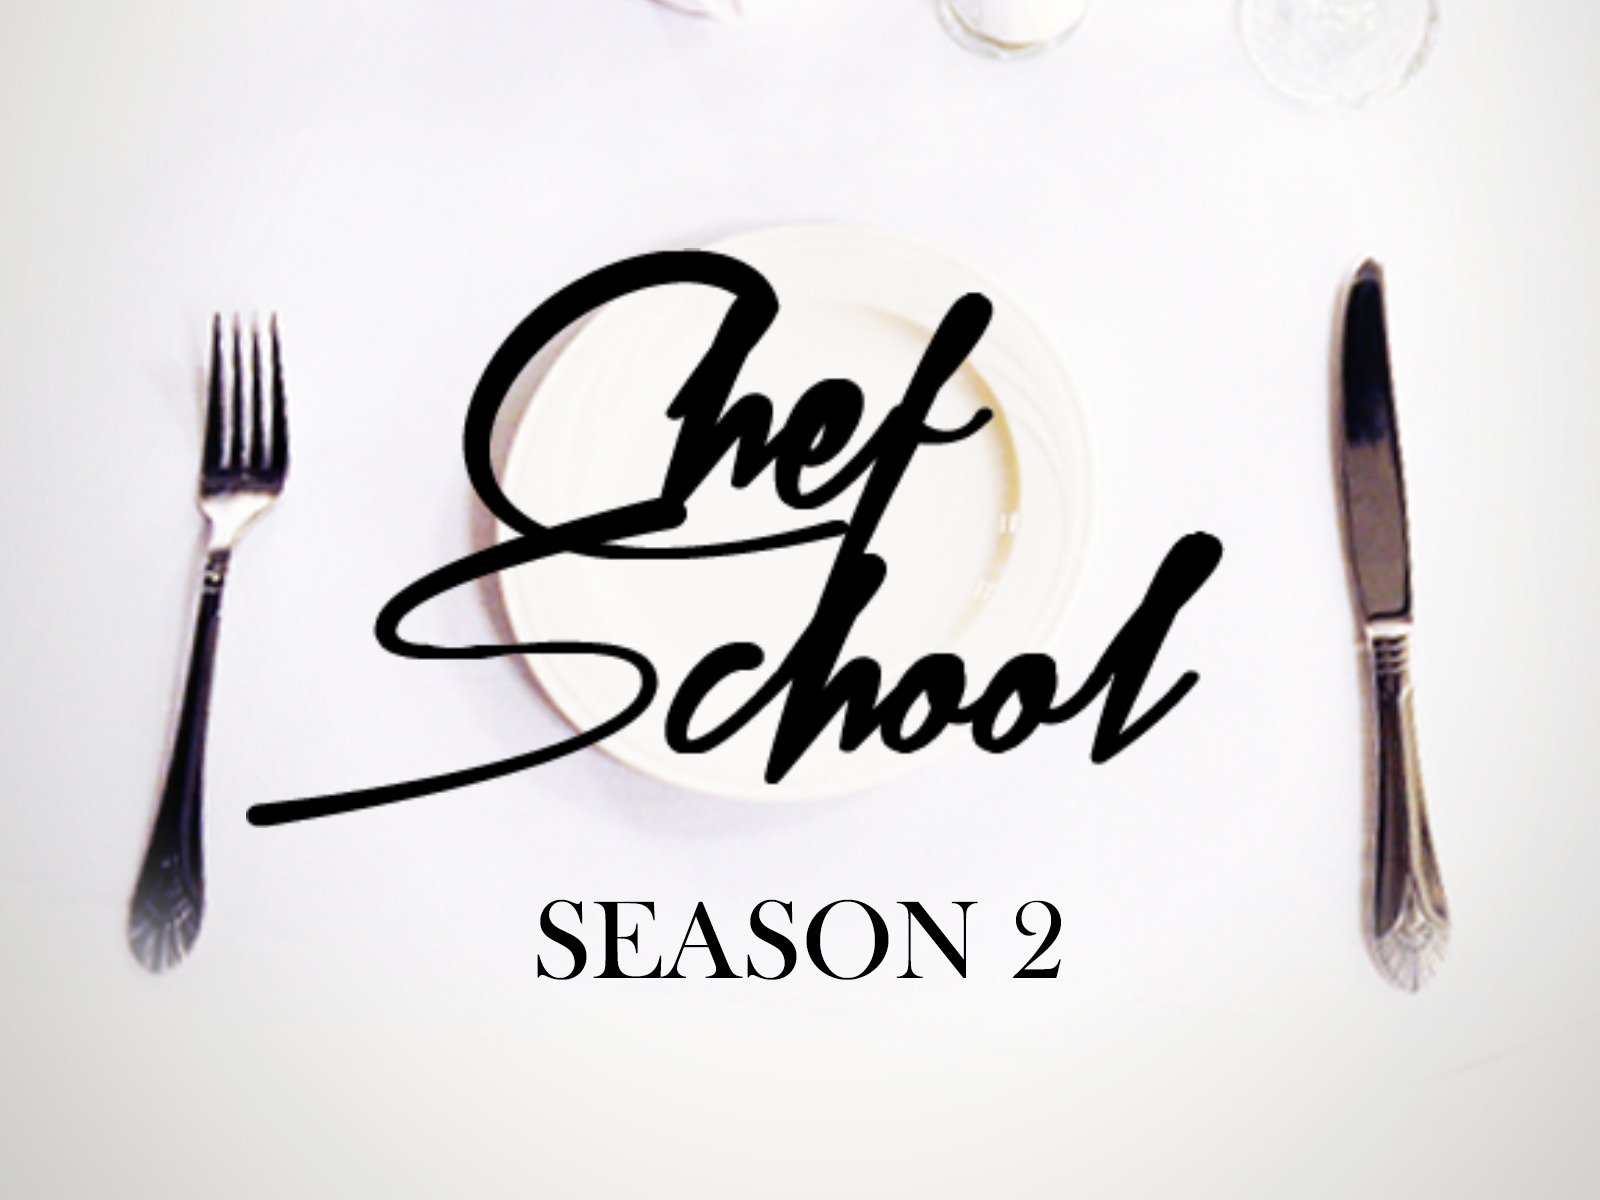 Amazon.com: Chef School: Tim Besserer, Mike Brennan, Andrew ...